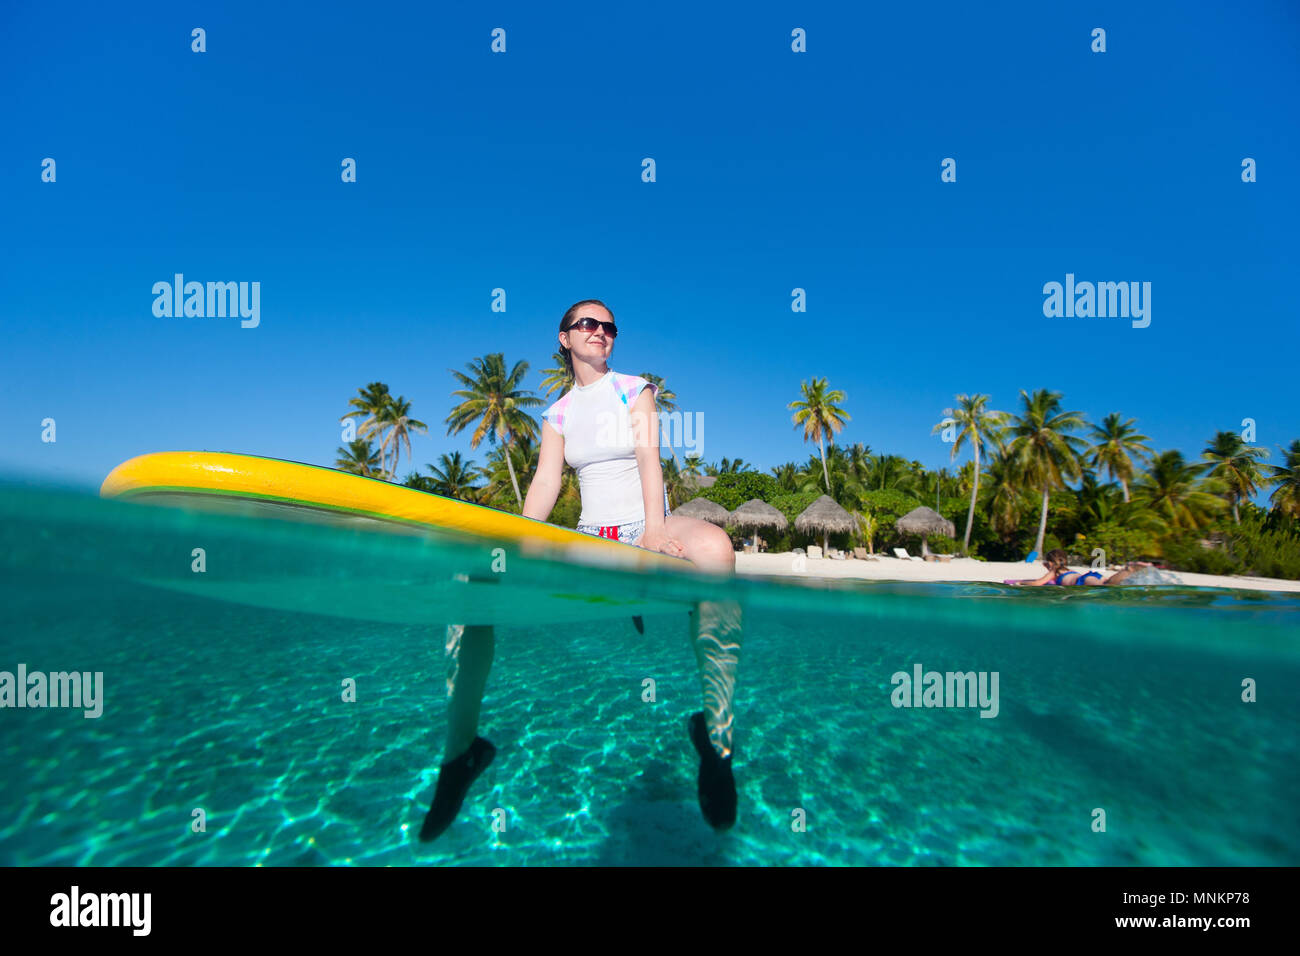 Young sporty woman on paddle board - Stock Image